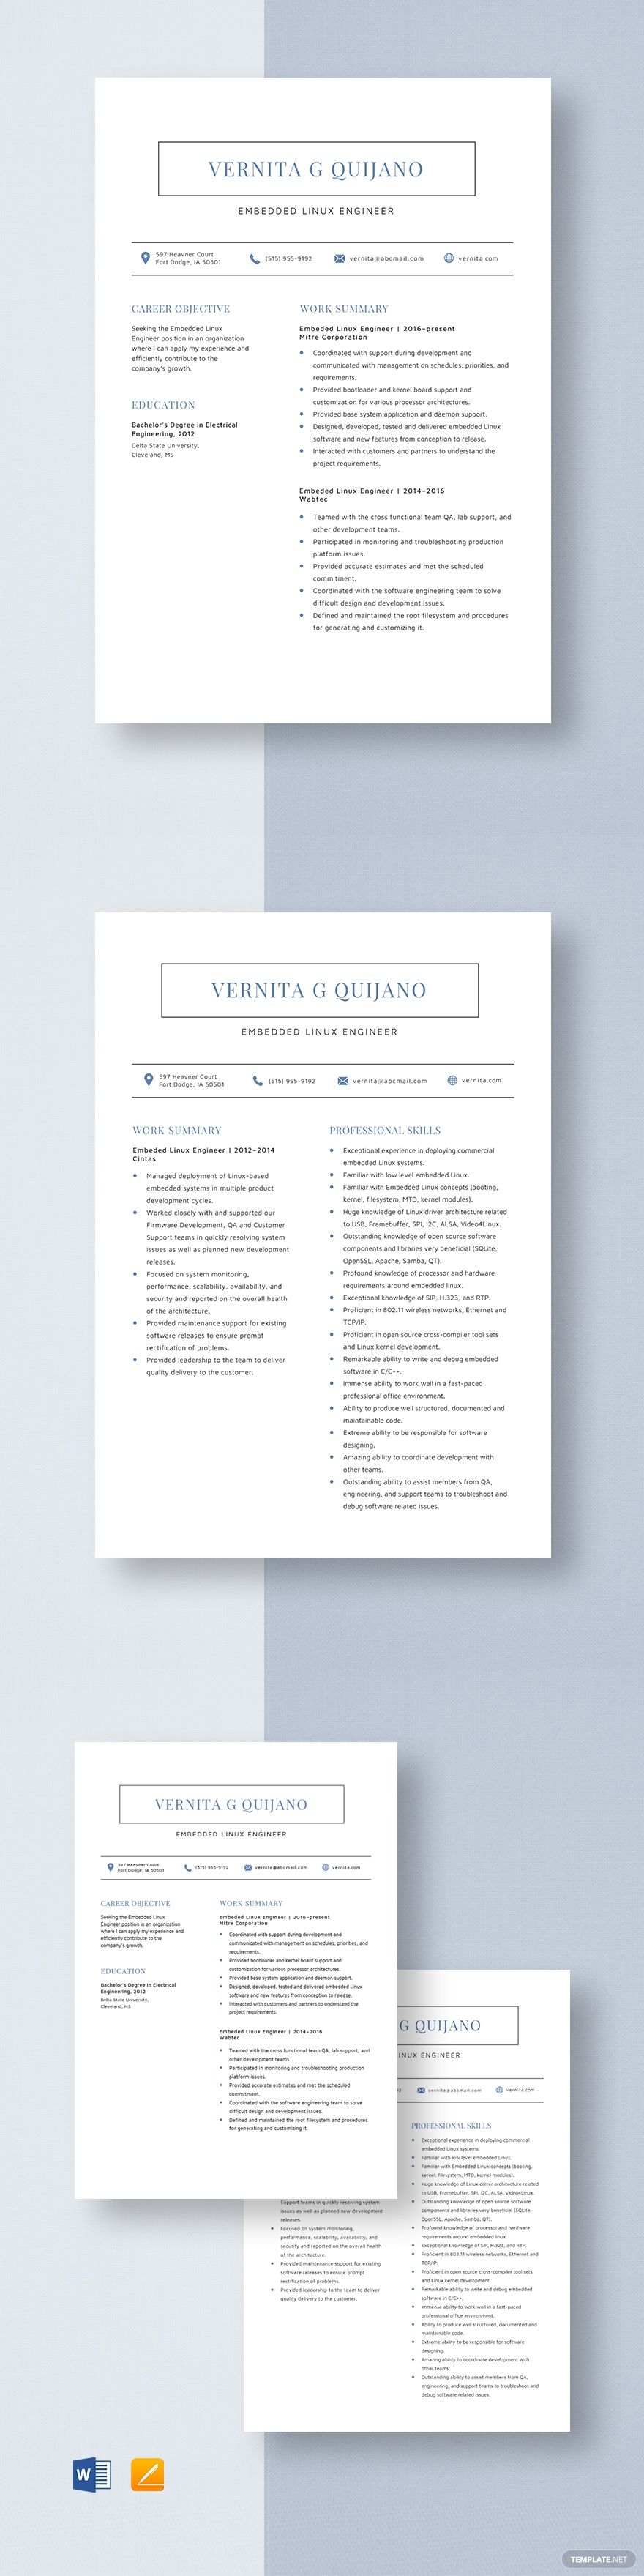 Embedded linux engineer resume template in 2020 project